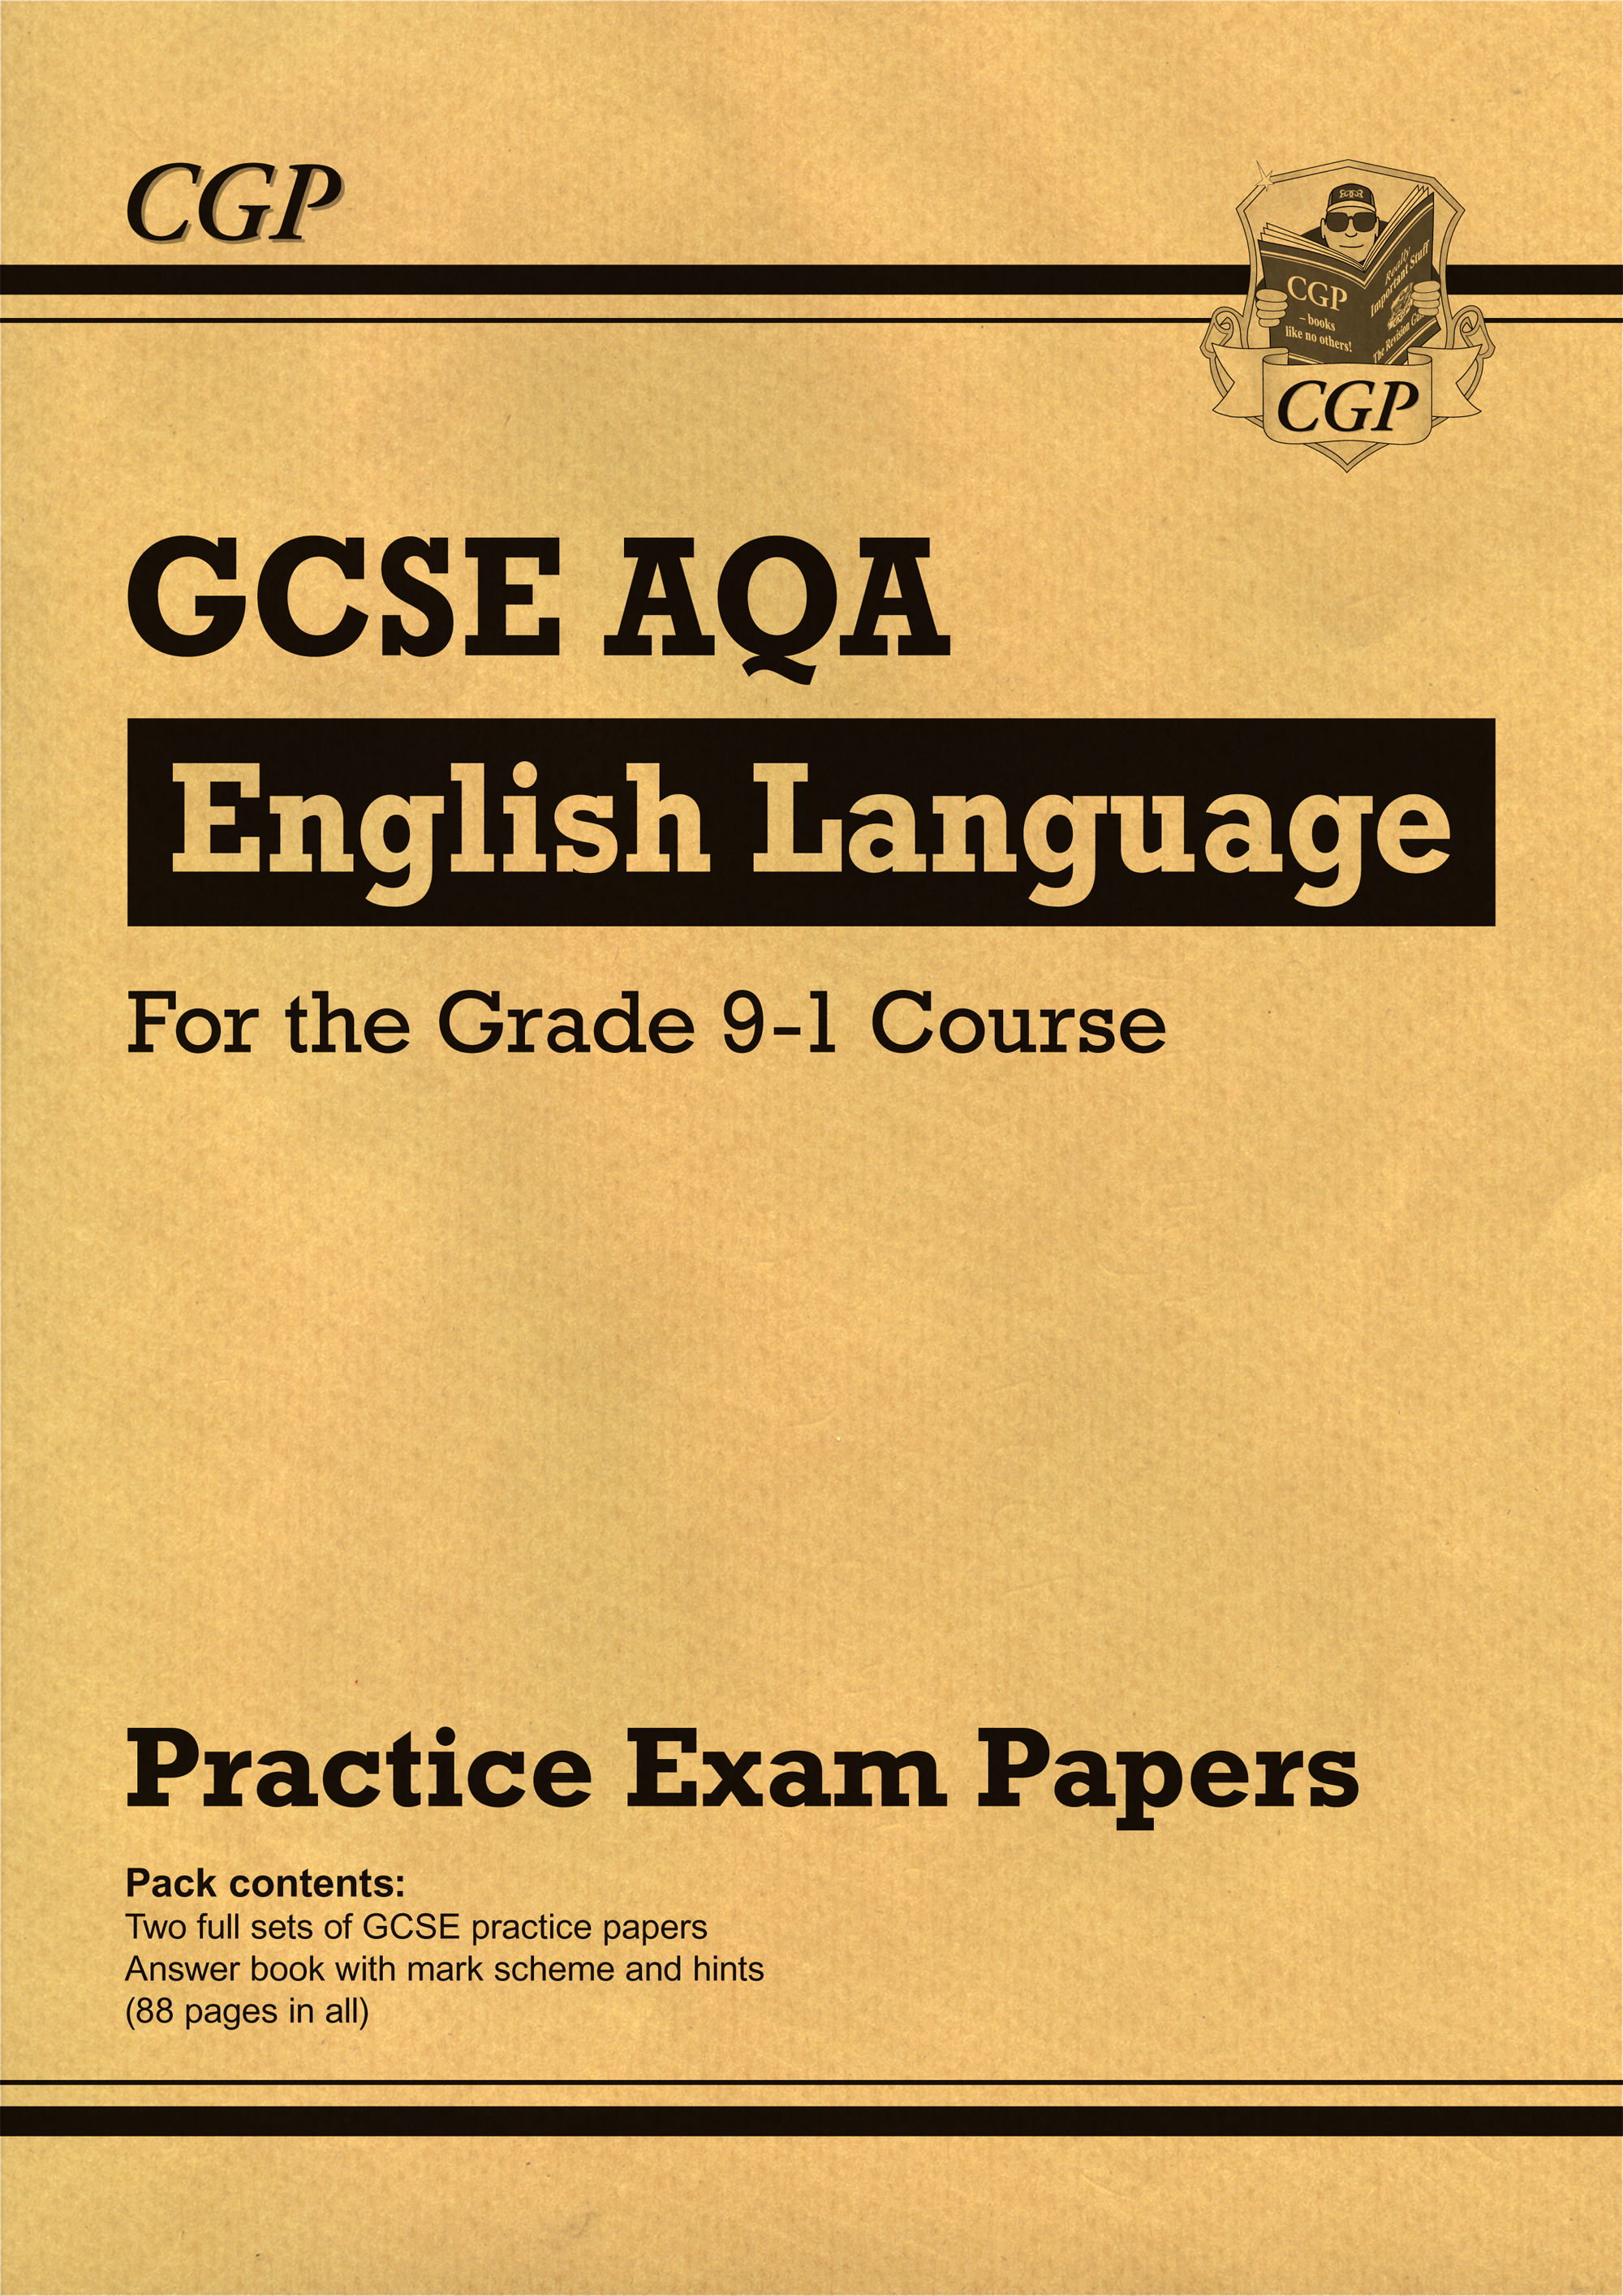 GCSE English | CGP Books